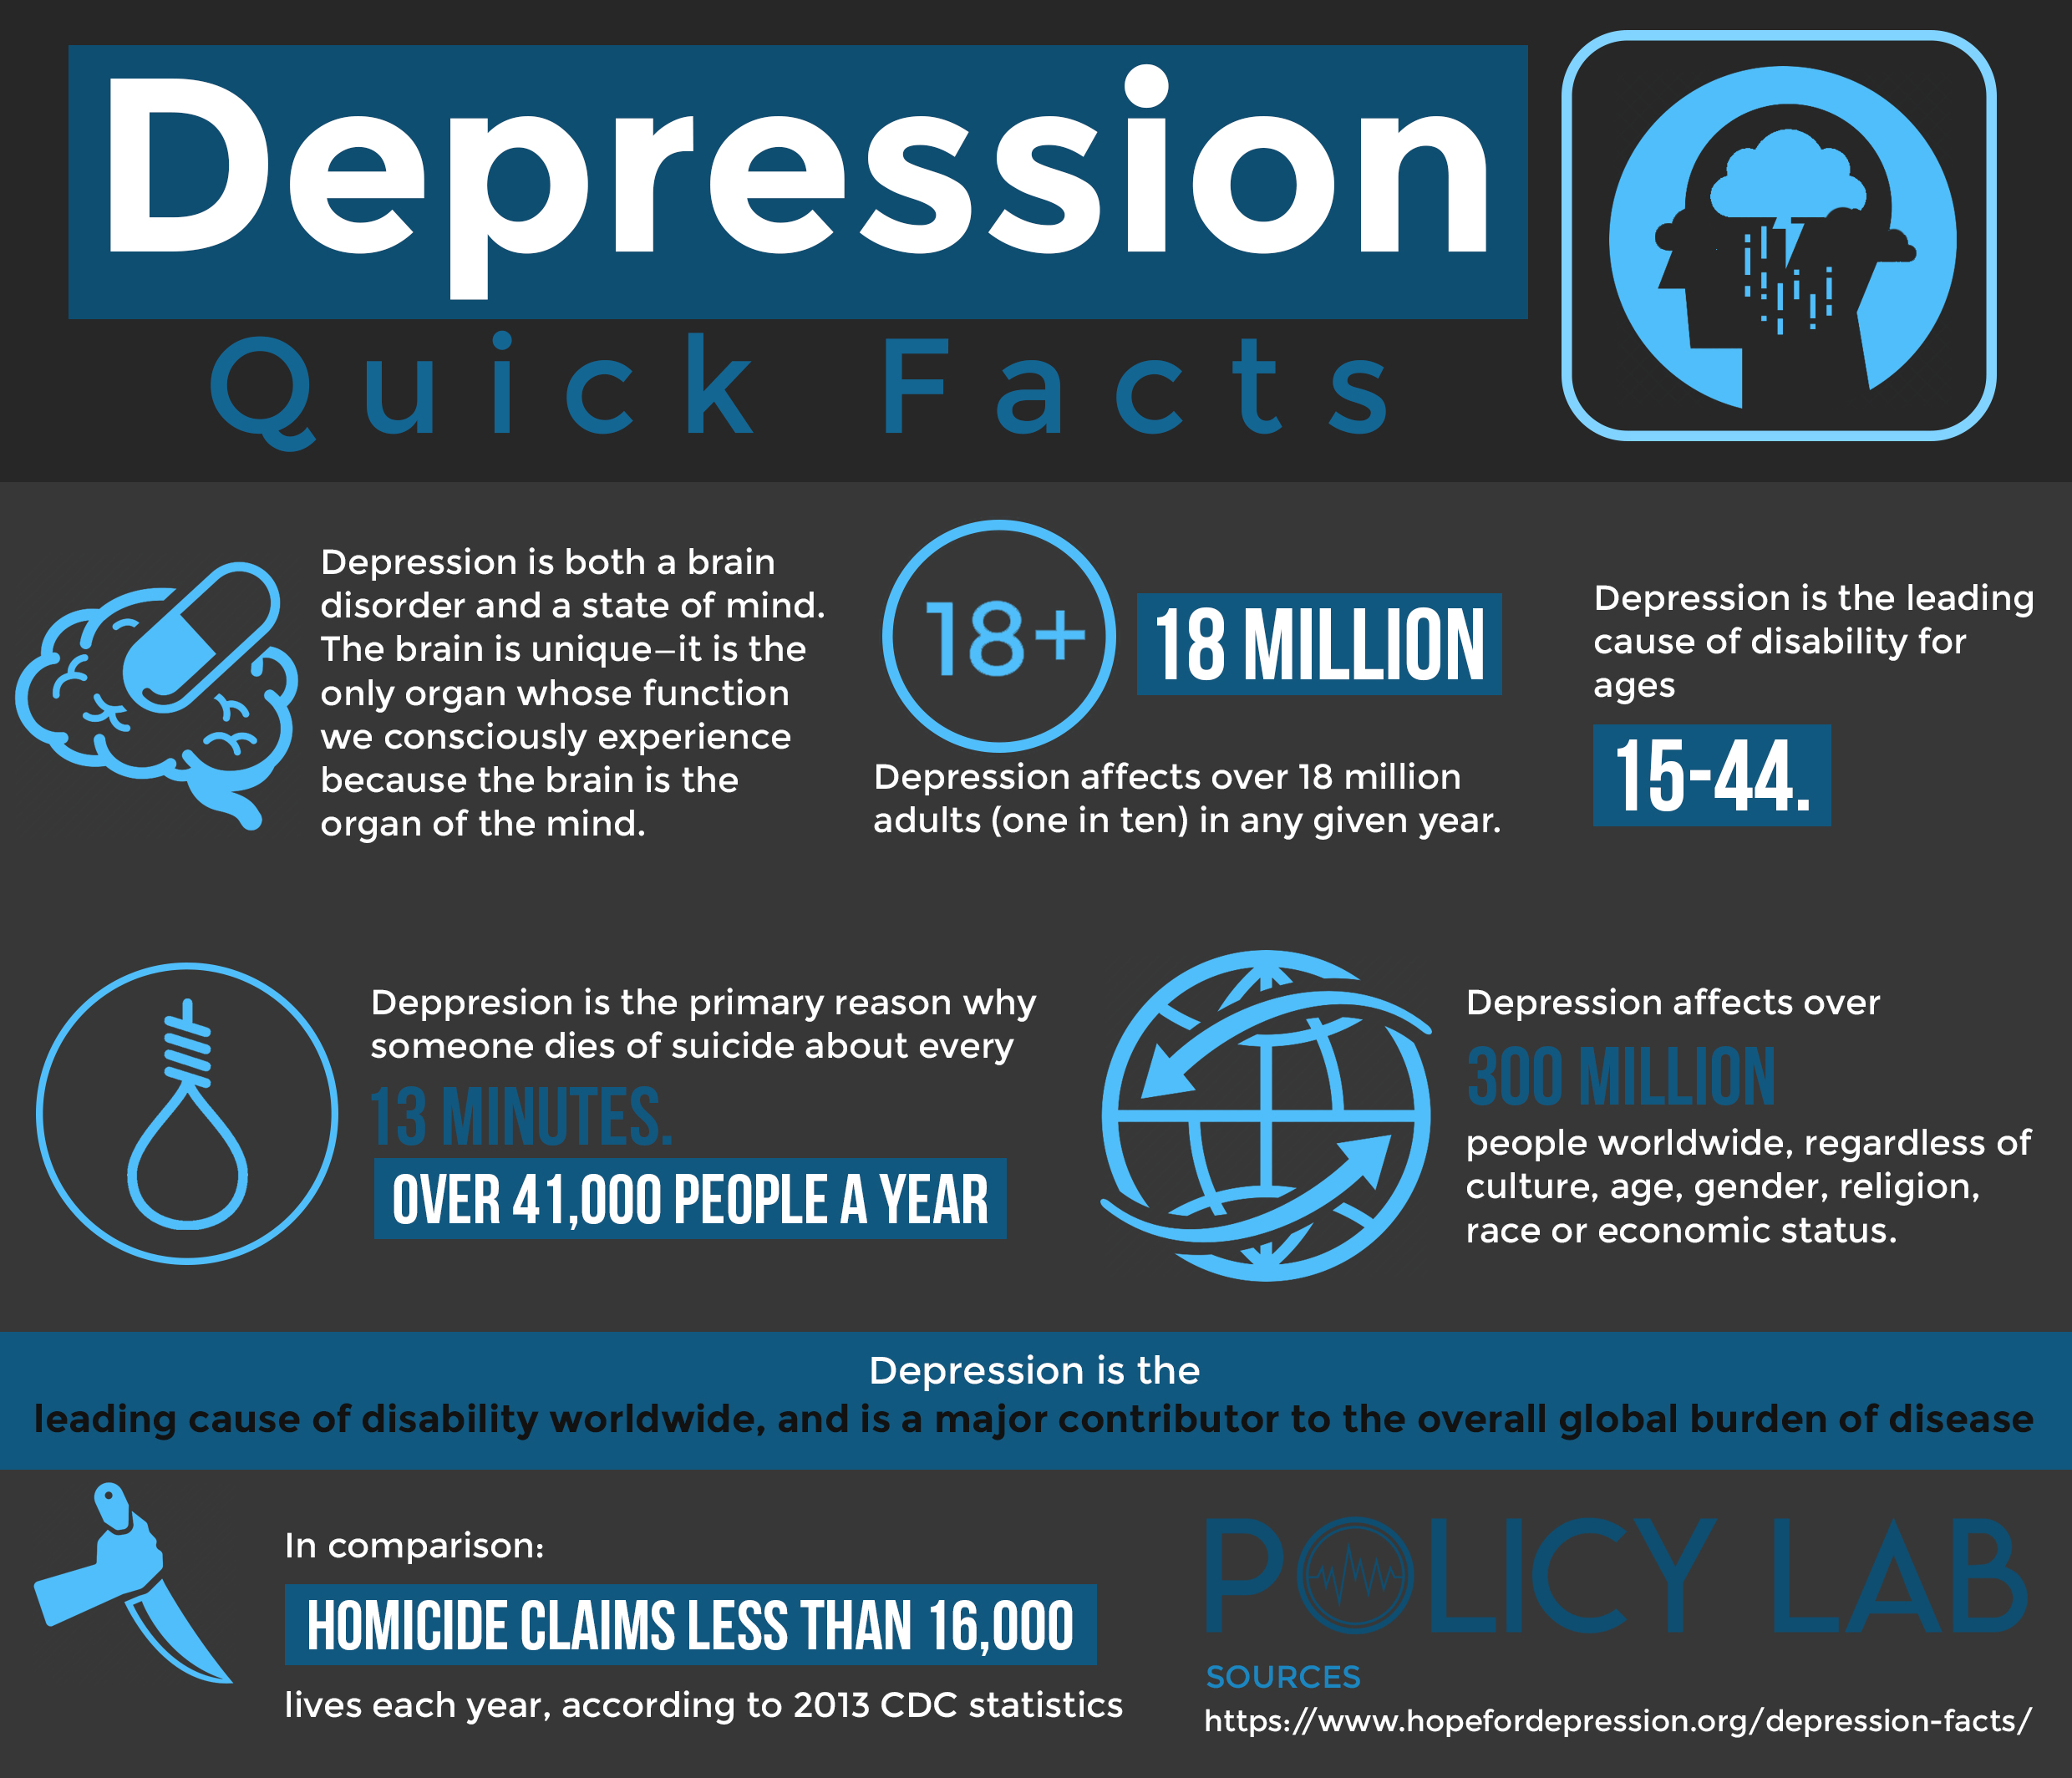 Depression Infographic Image and Quick Facts